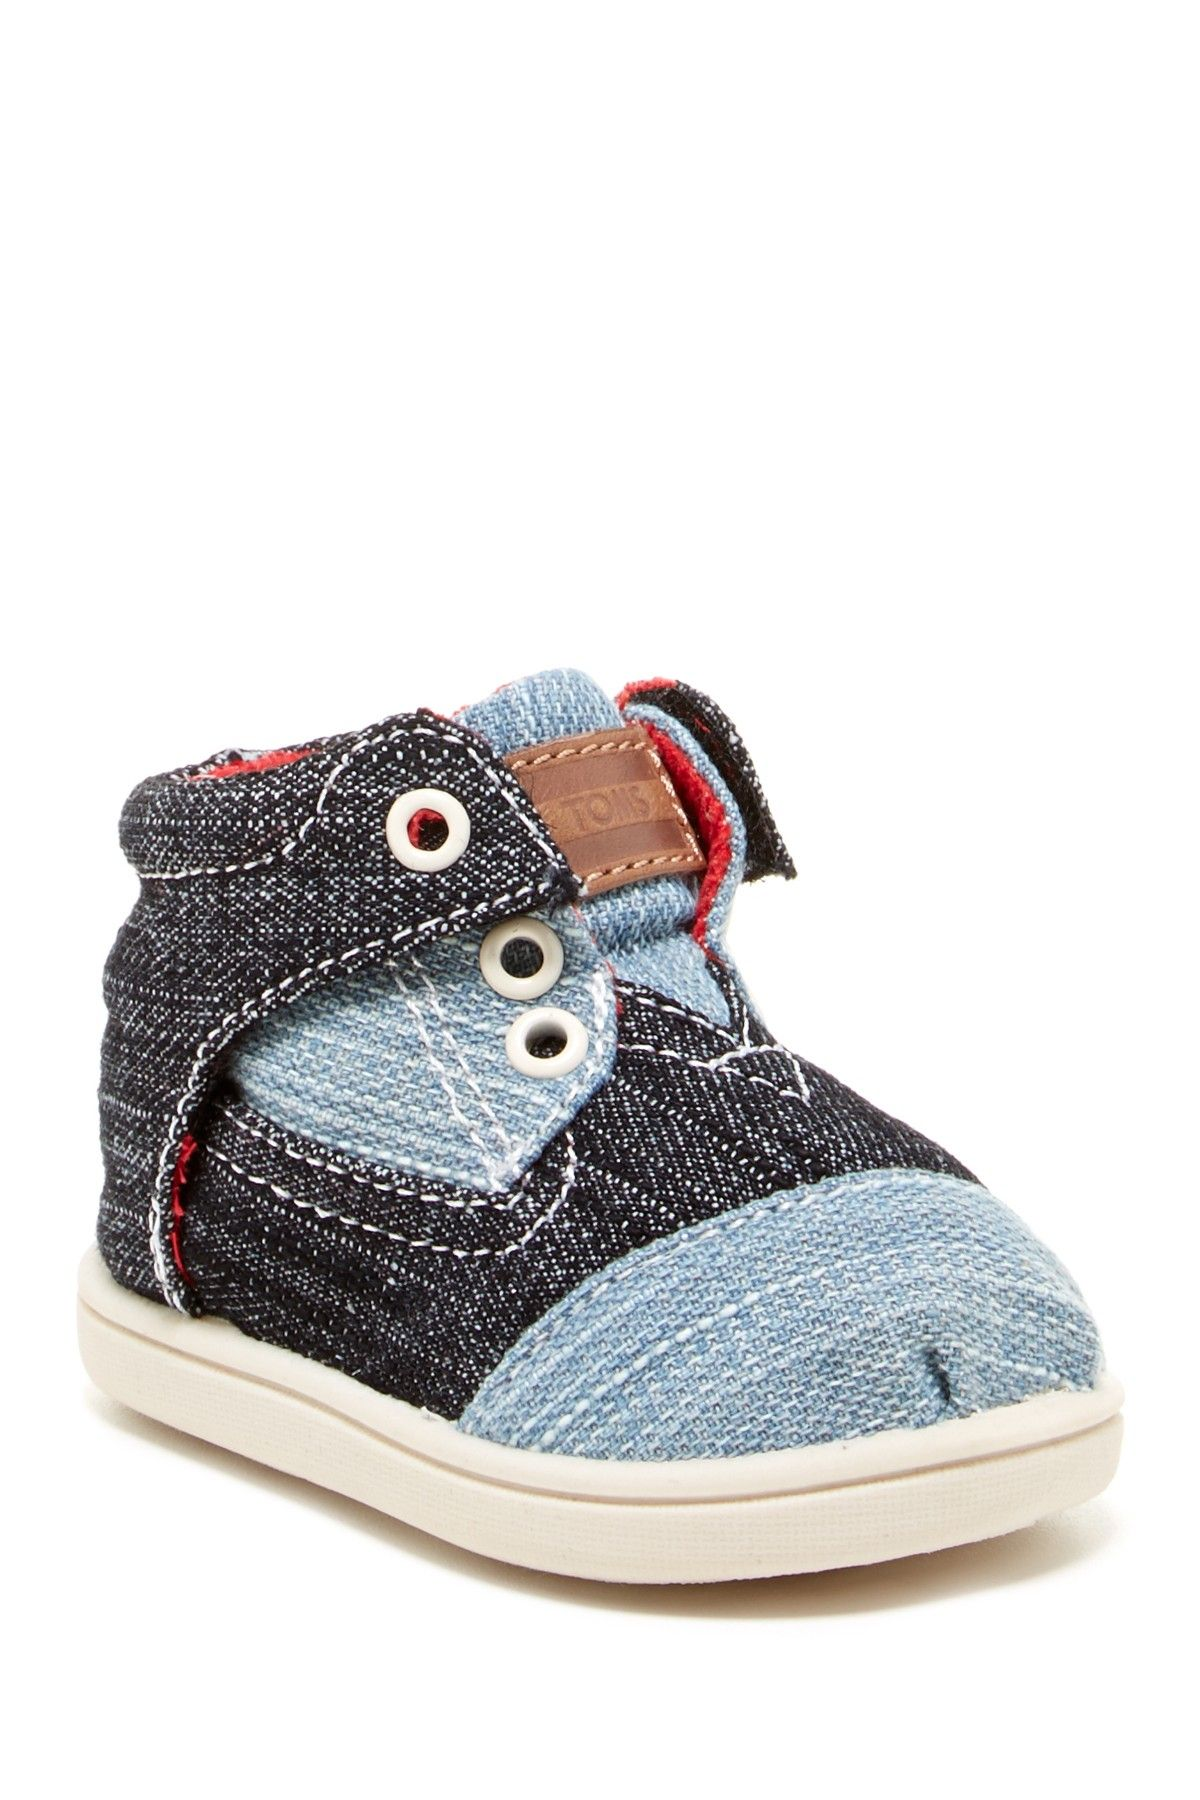 Baby toms things i love Pinterest